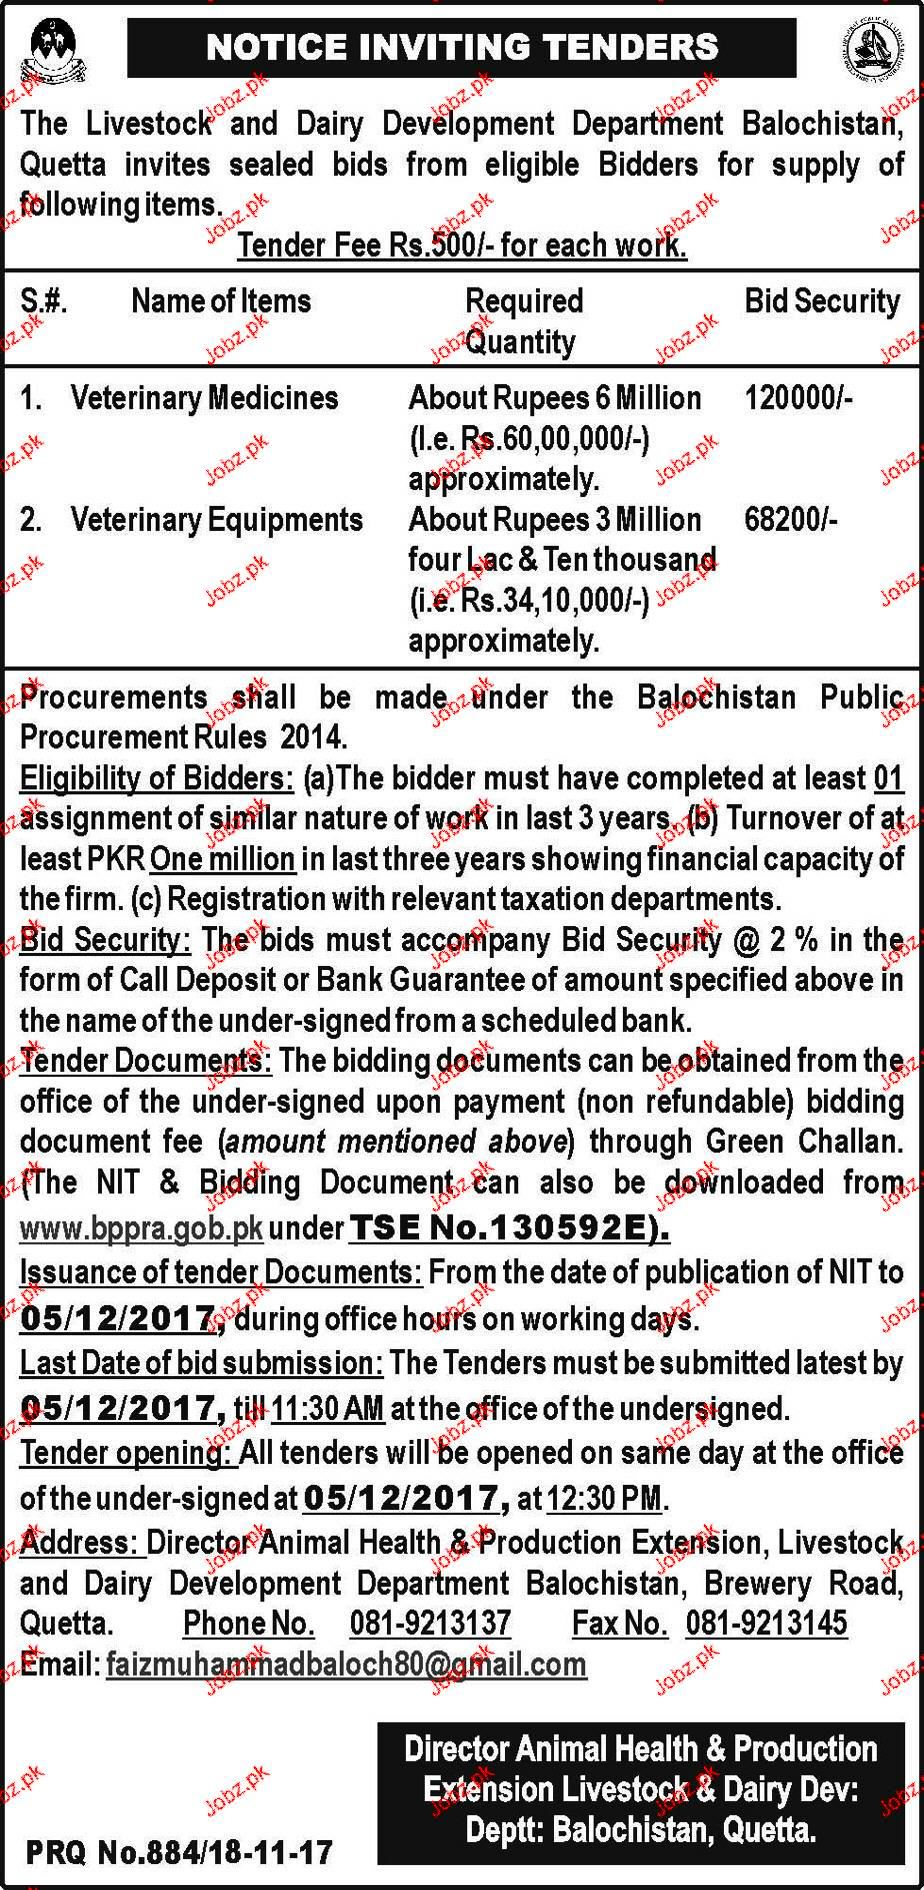 Livestock and Dairy Development Department Tender 2019 Government